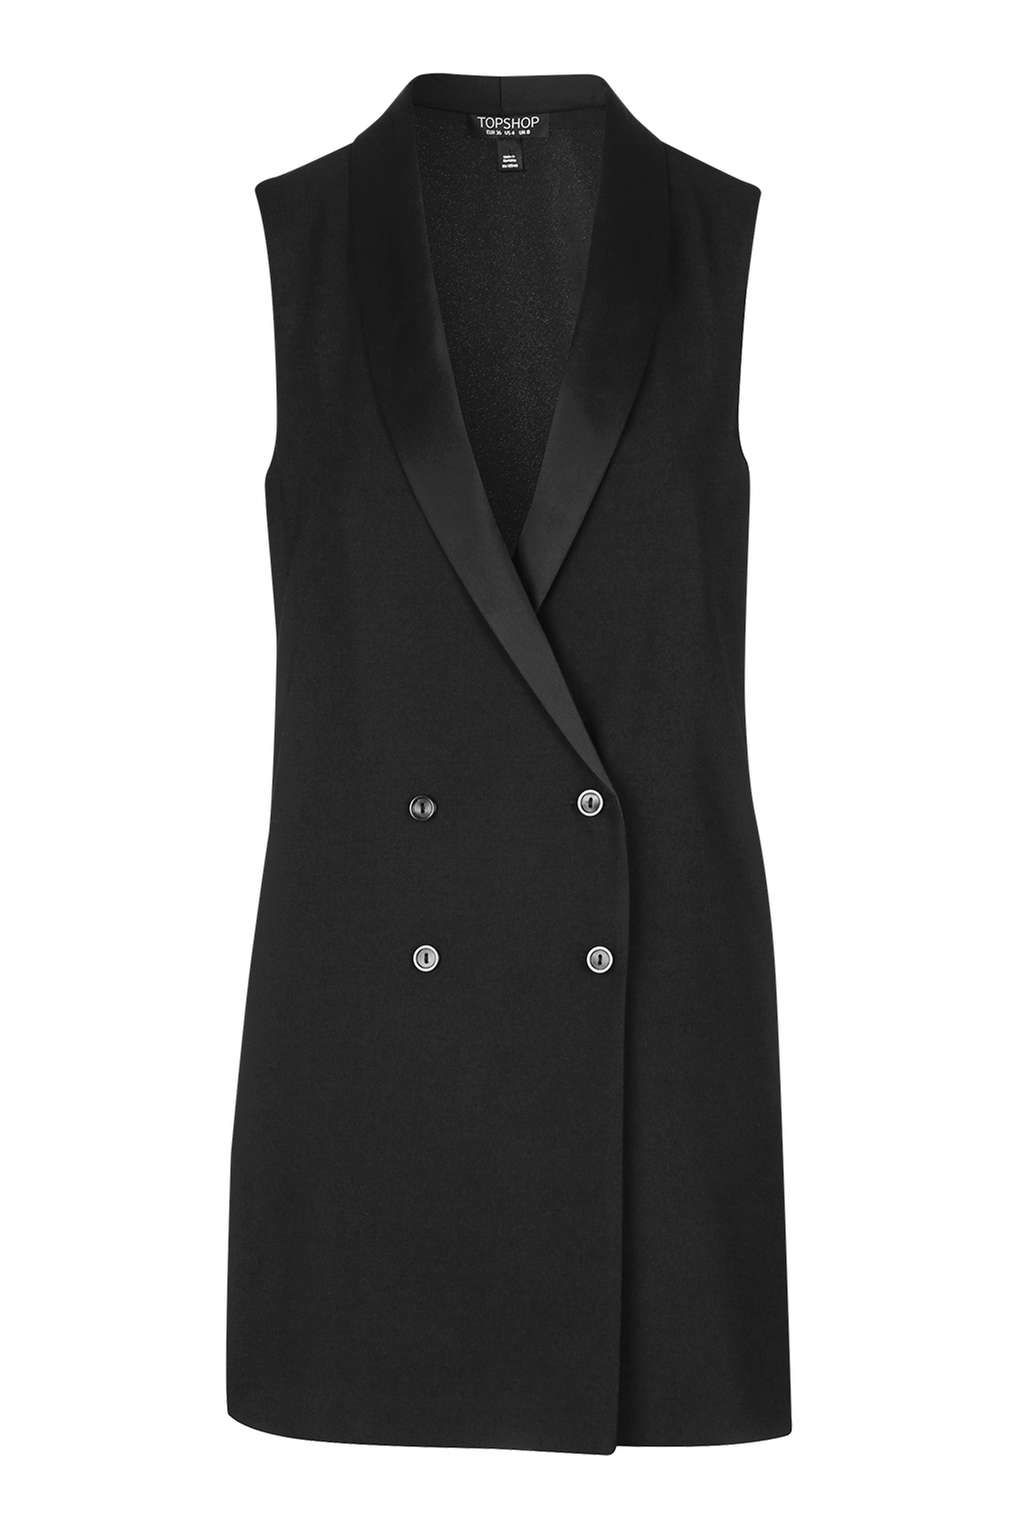 Buy Online Topshop Womens Tall Longline Sleeveless Jacket - Inexpensive Online Free Shipping Cheapest Price Marketable Excellent For Sale FpKceCDGX